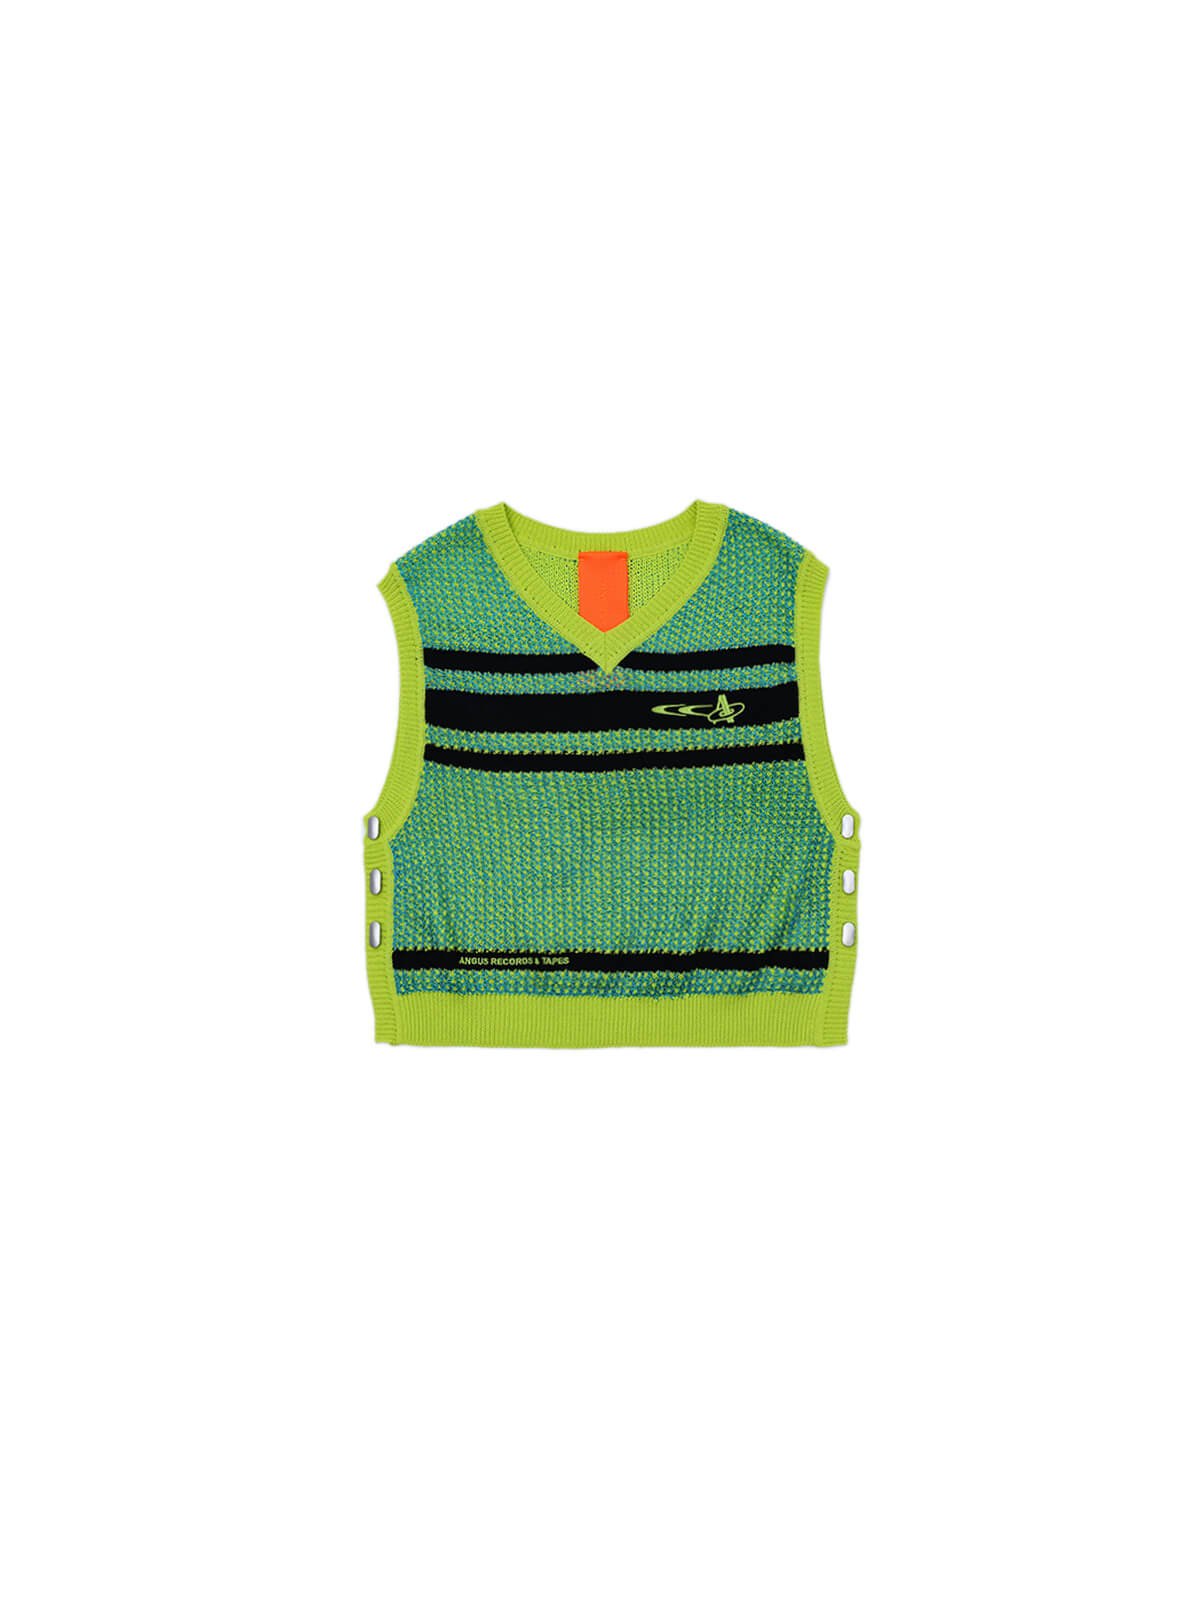 RECORDS & TAPES V-NECK KNIT VEST